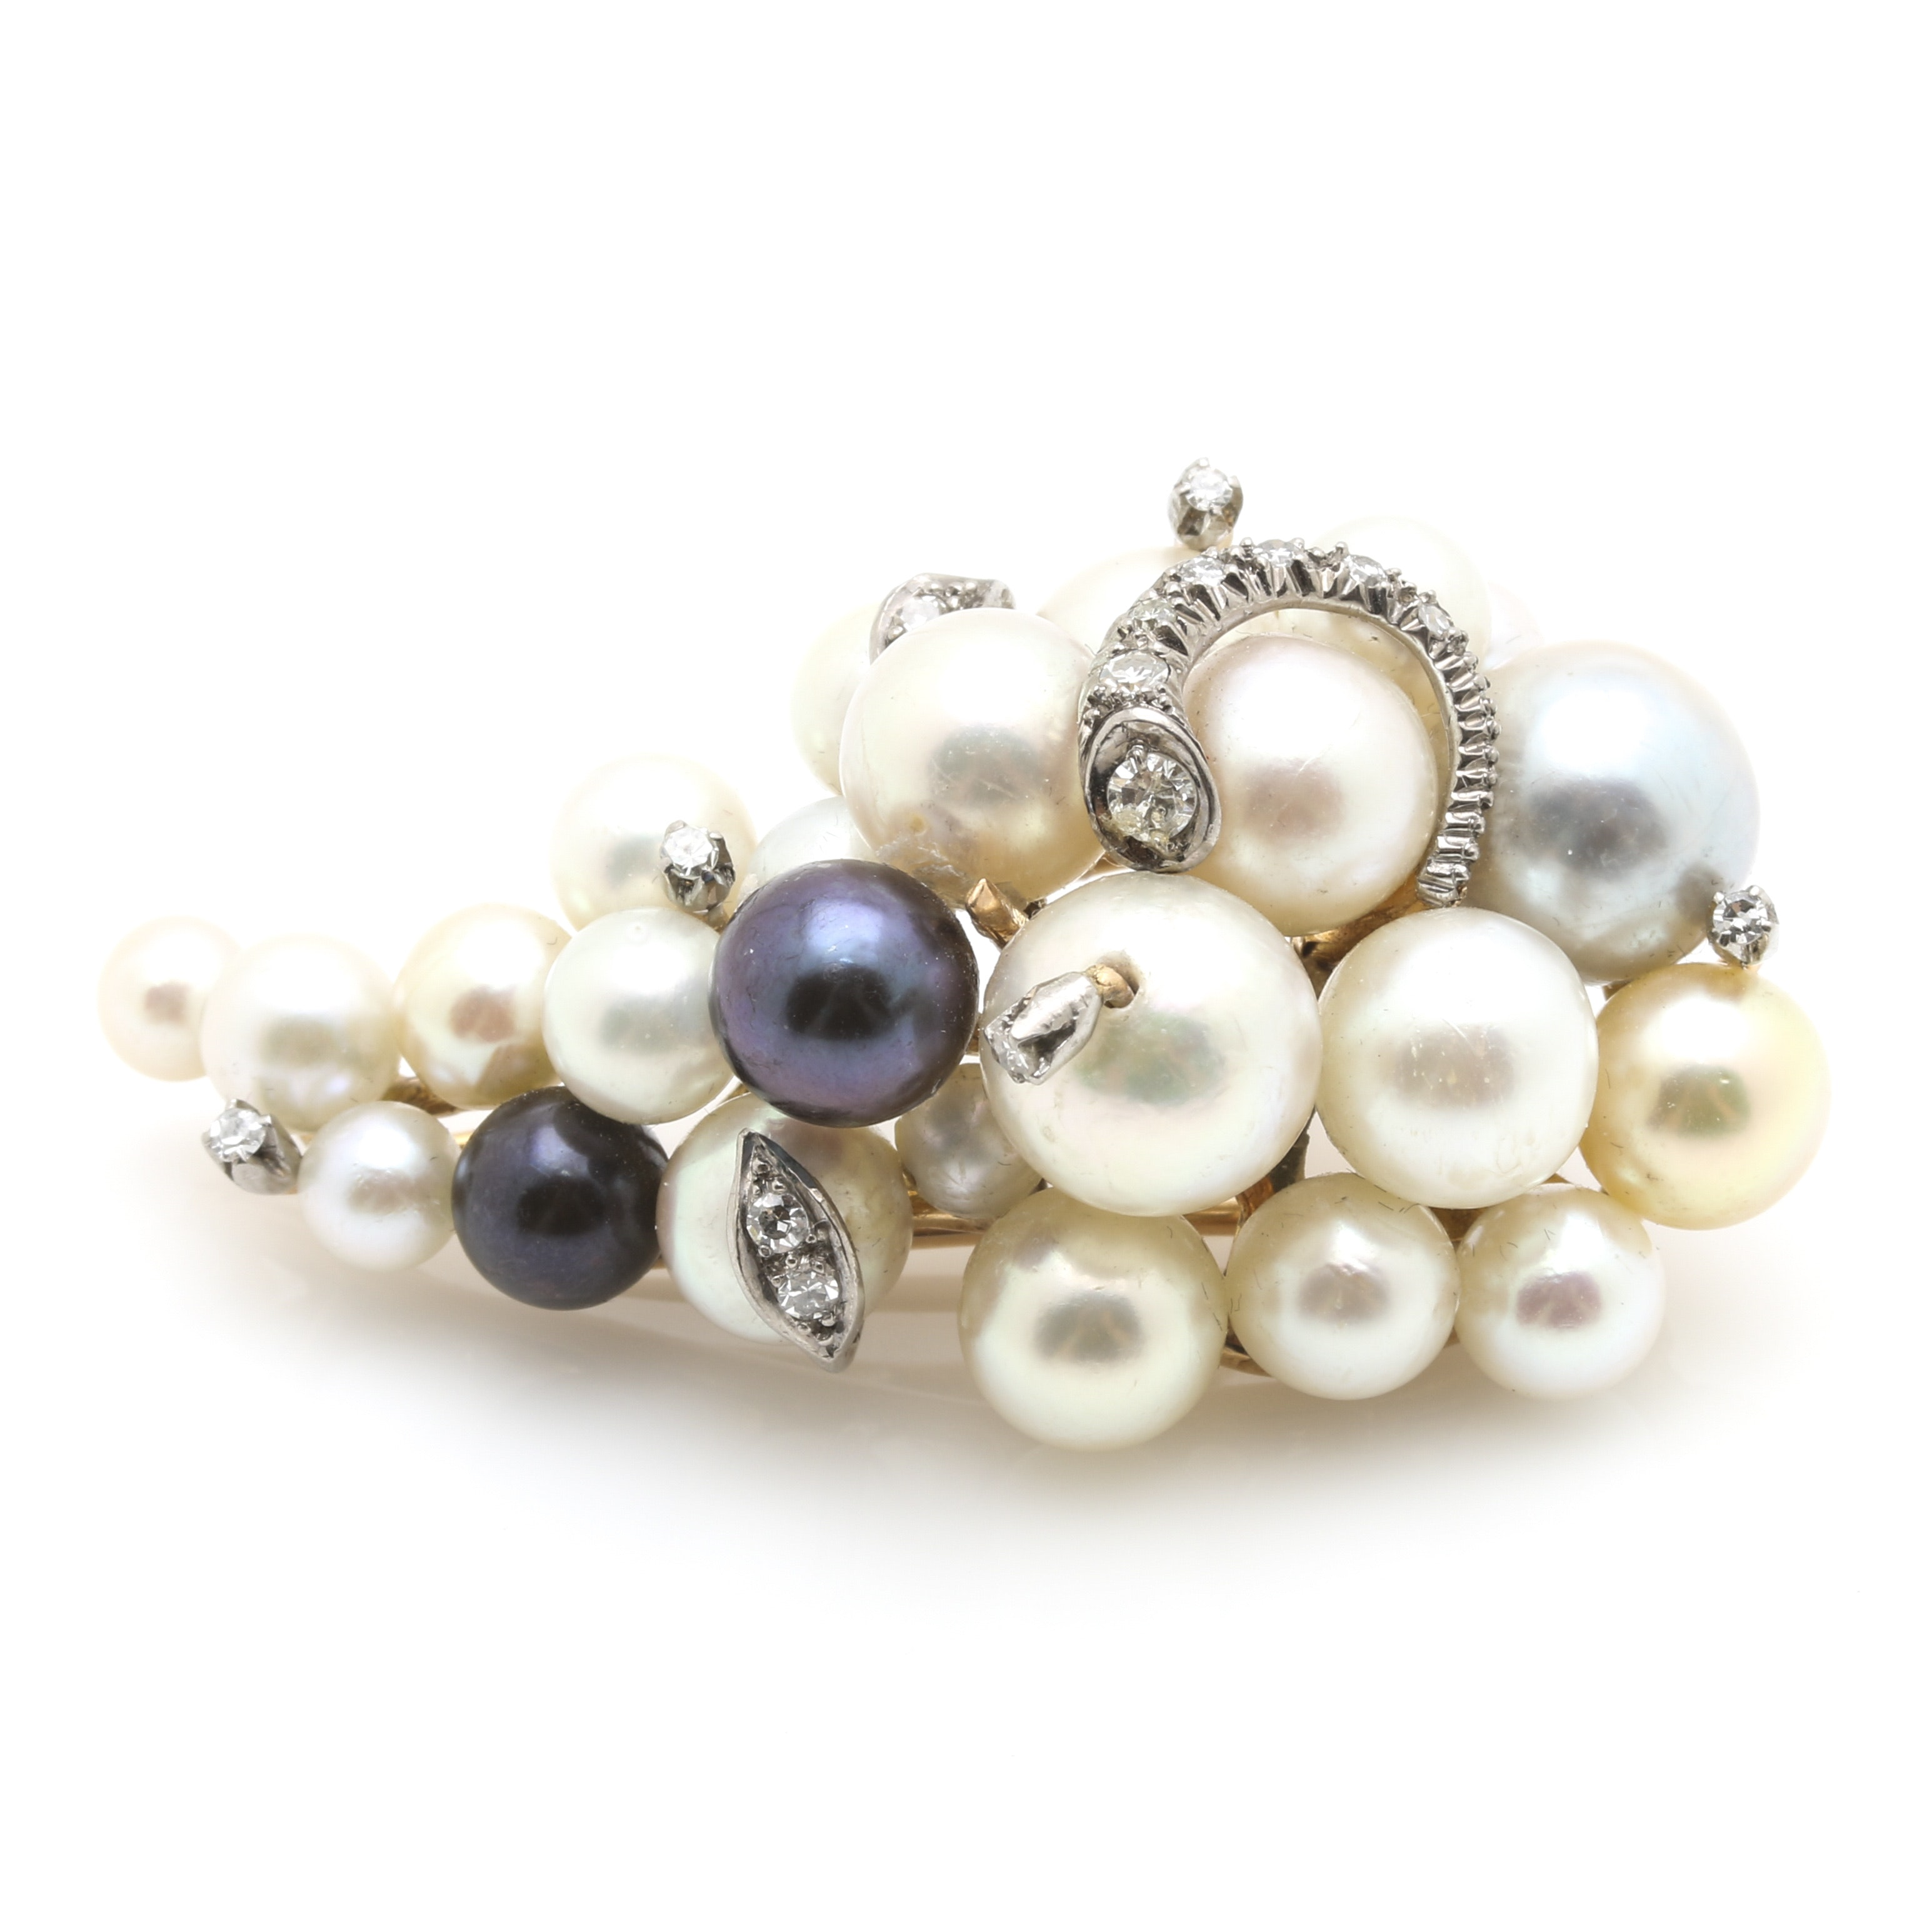 18K Yellow Gold Pearl and Diamond Grape Cluster Brooch